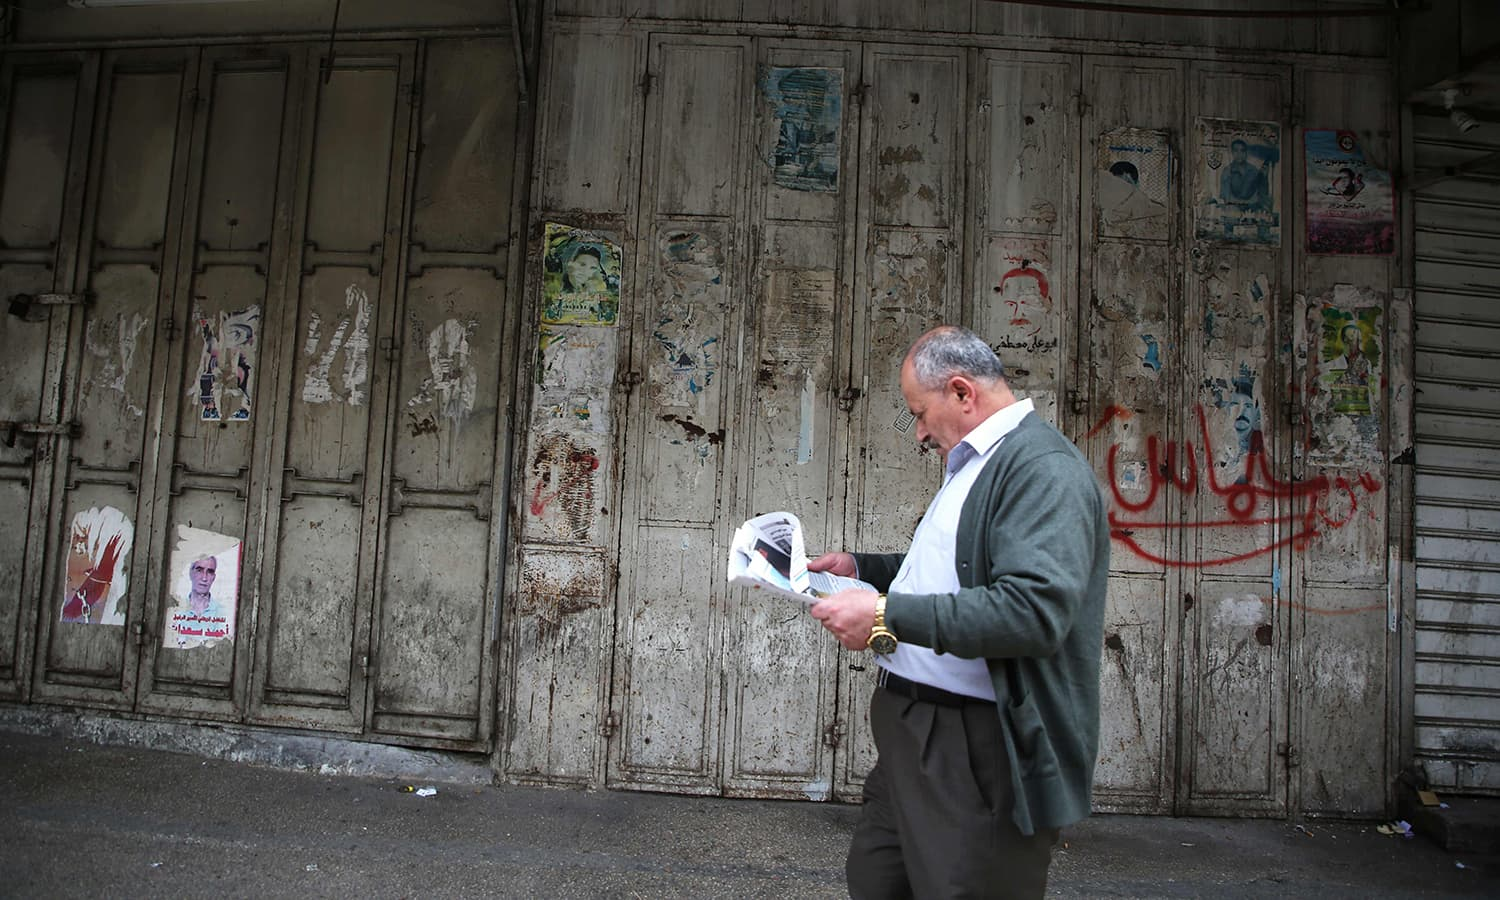 A Palestinian man walks past closed shops on an empty street in the Israeli occupied West Bank city of Nablus. — AFP